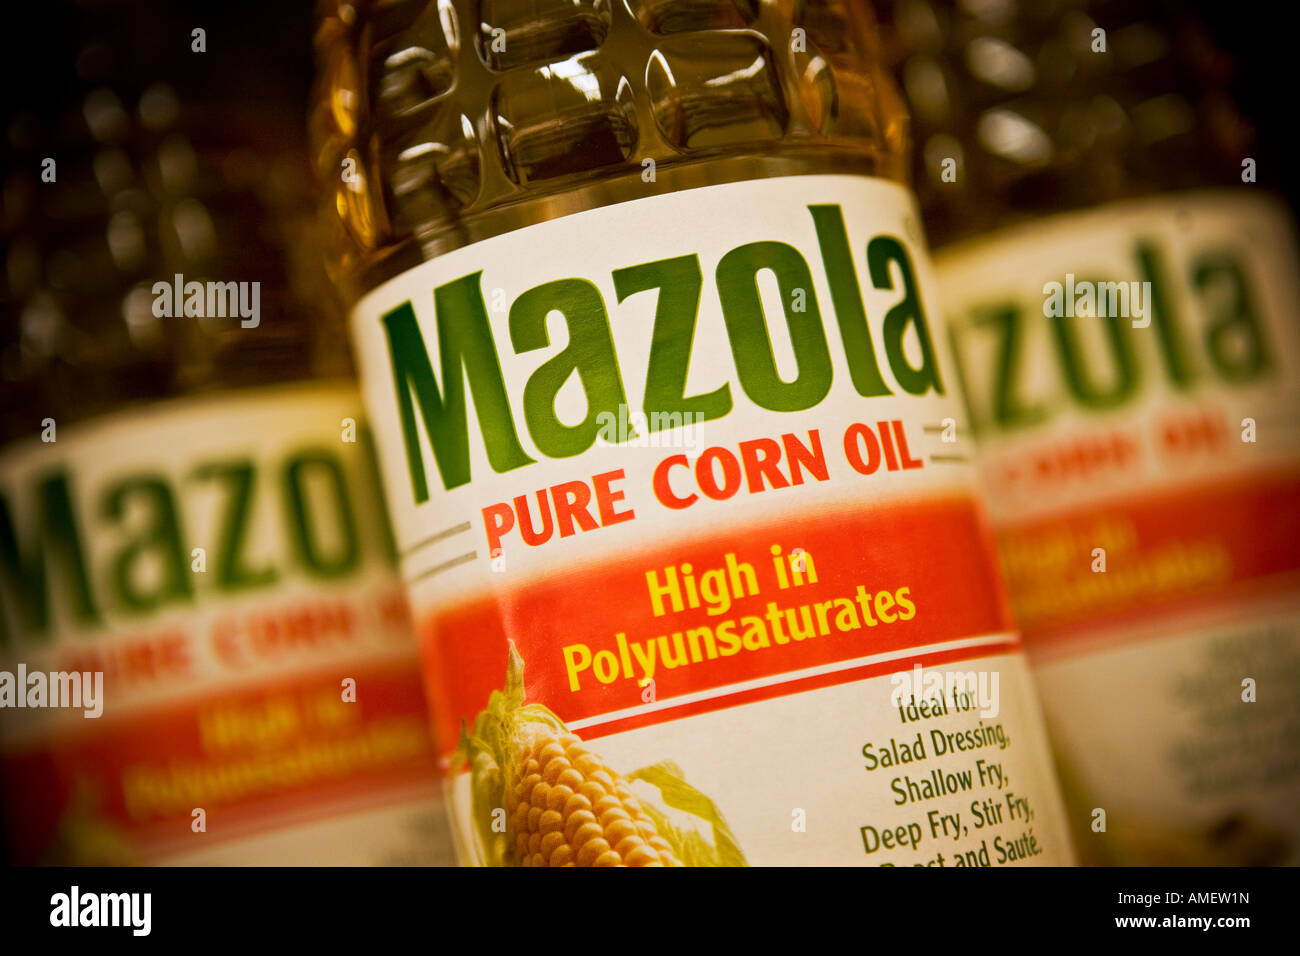 Mazola corn oil Mazola is an Associated British Foods brand - Stock Image